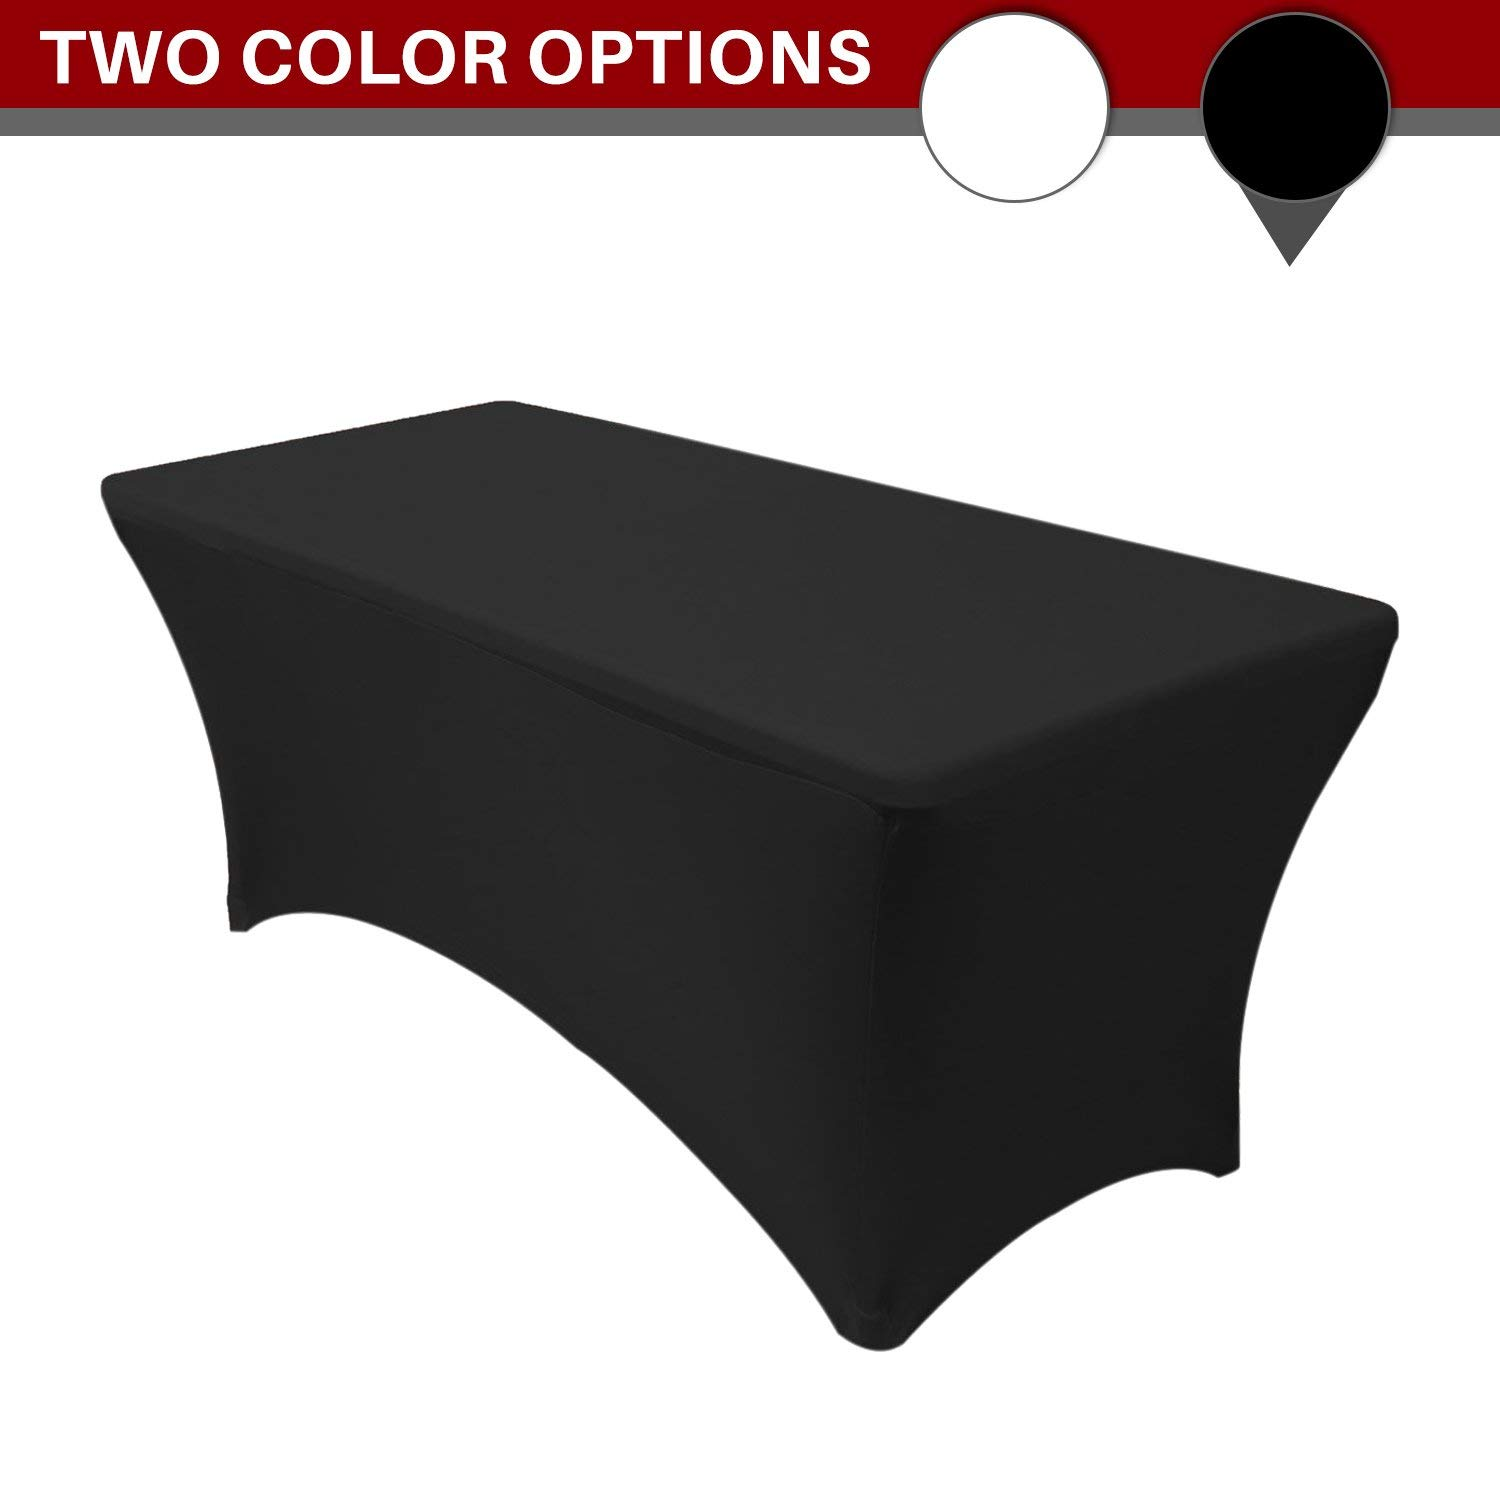 Stretch Tablecloth - Stretch Spandex Tablecloth for Elegant Parties and Events - Perfect for Wedding Receptions or Formal Events - 8 feet Rectangular Table Cloth (Black)